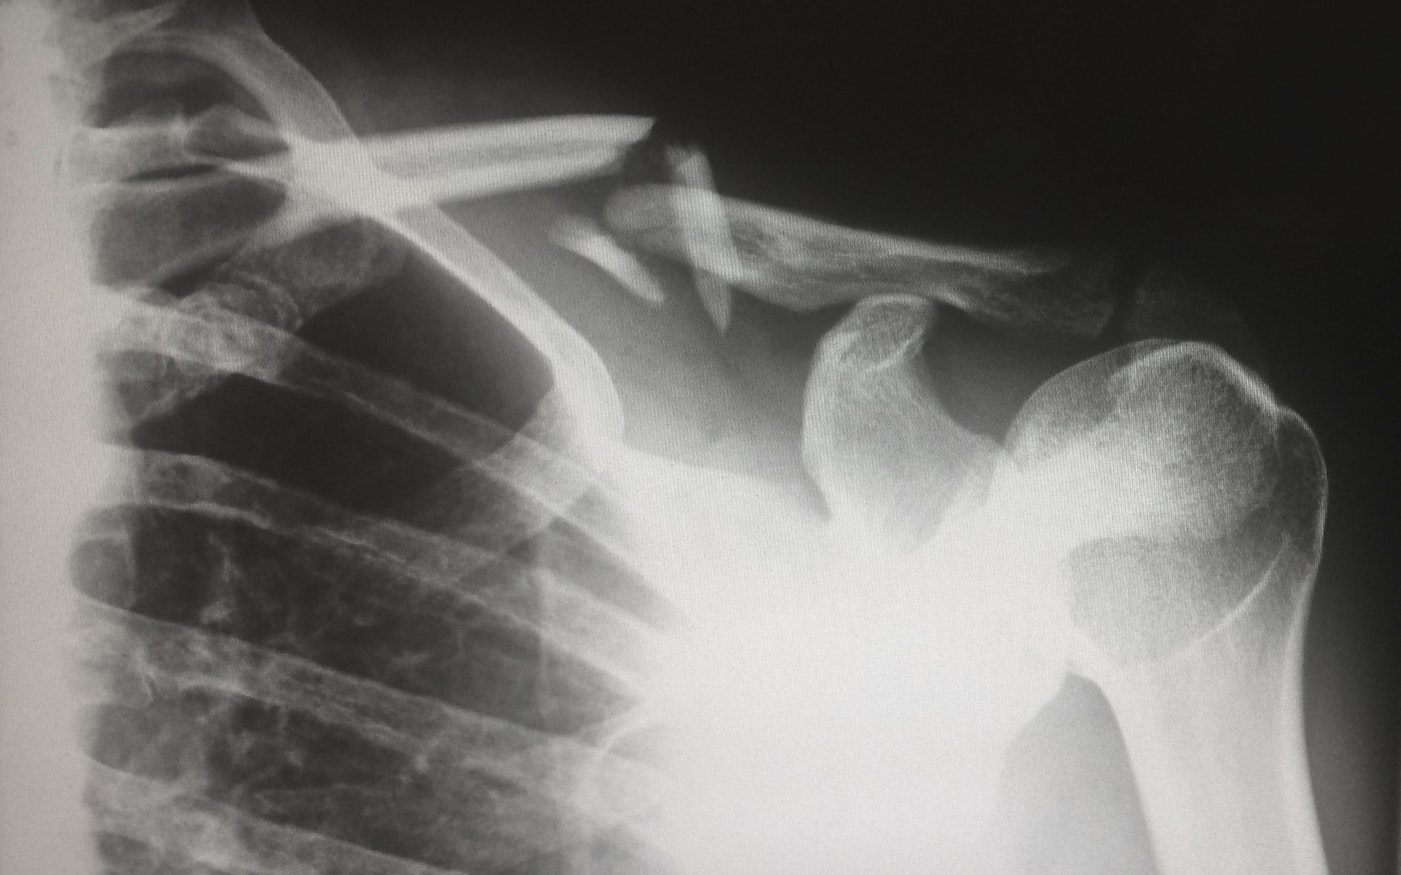 x-ray scan of chest